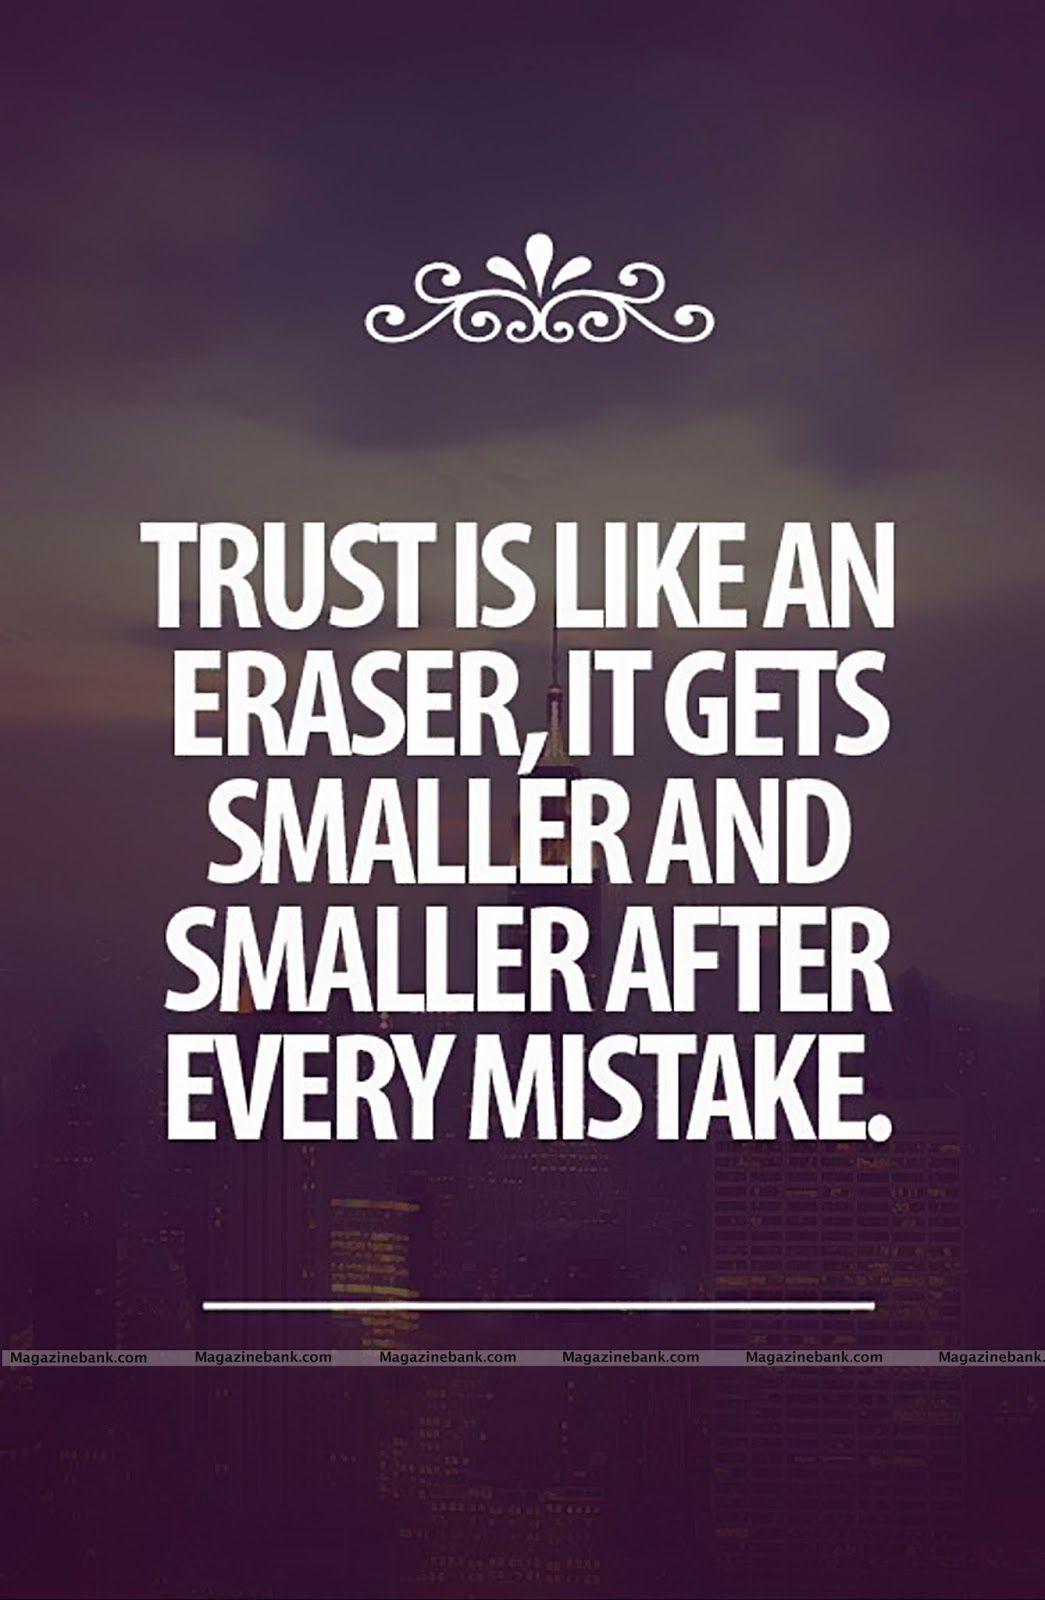 Quotes on betrayal and trust - Image Result For Trust Quotes For Friends